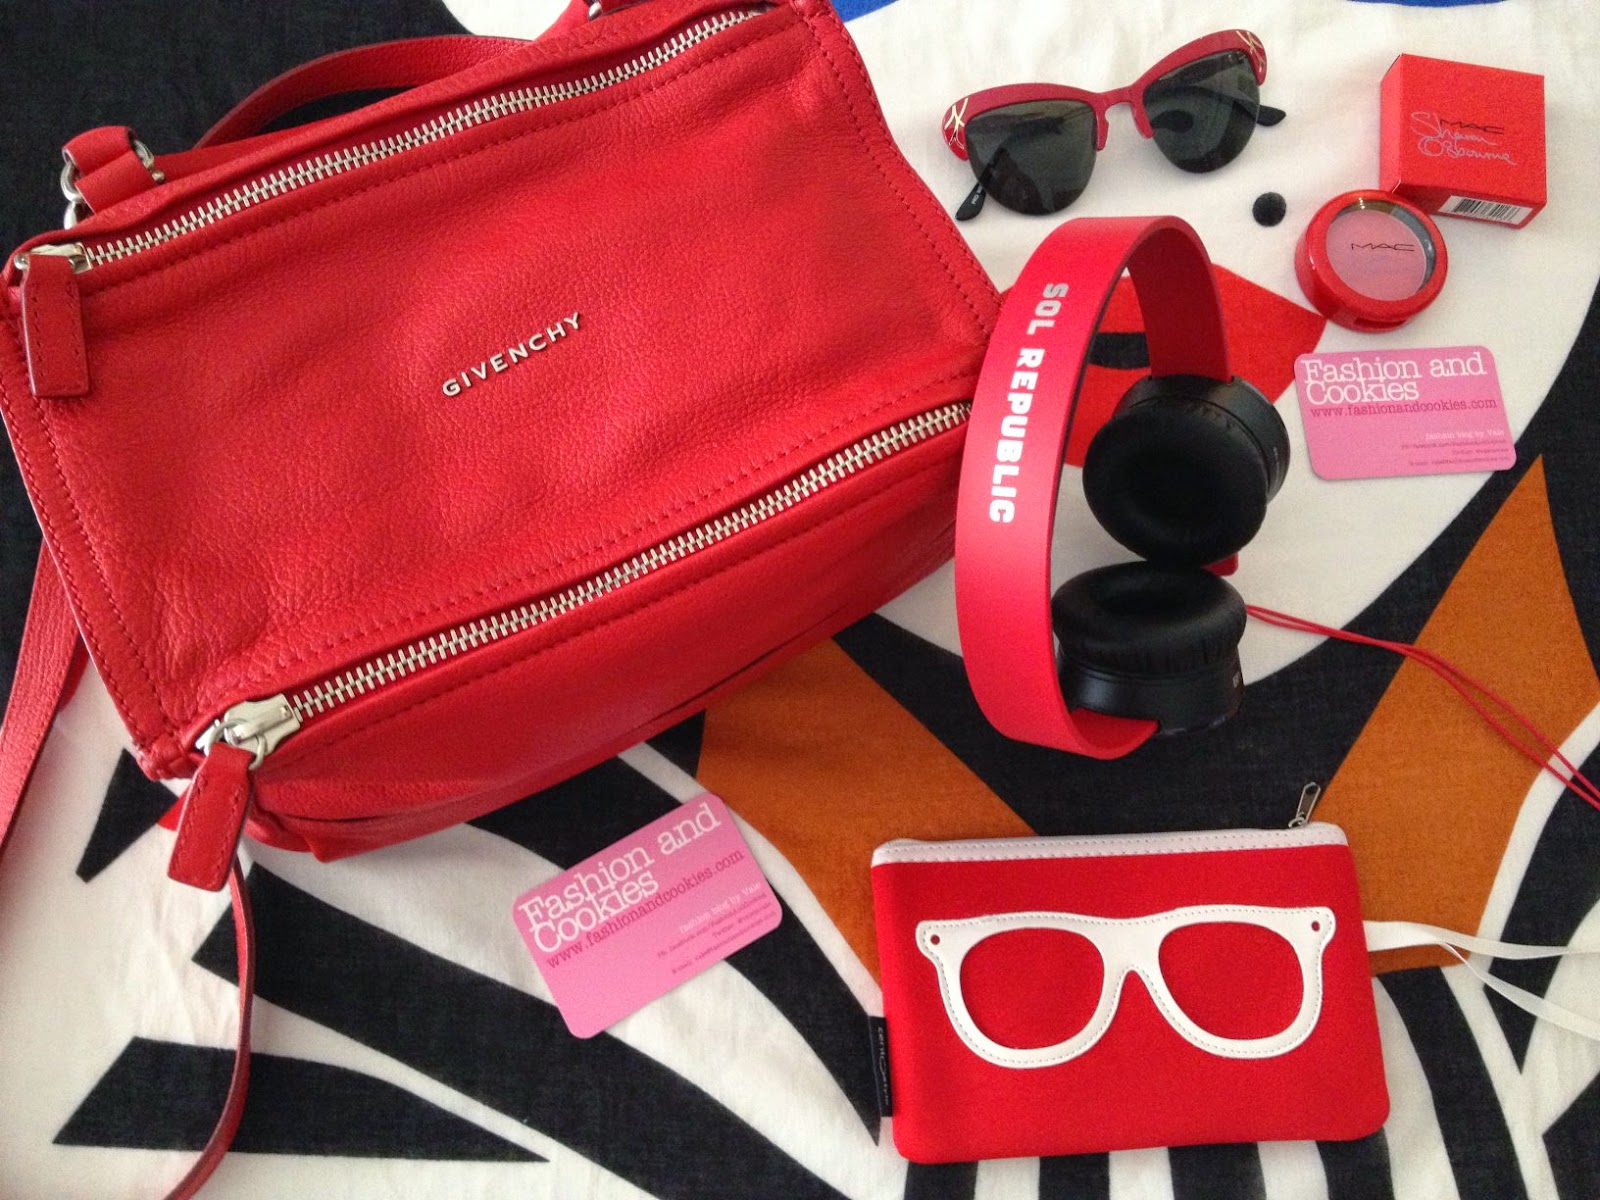 Red Givenchy Pandora, Pandora small Givenchy, Sol Republic headphones, Fashion and Cookies, fashion blogger